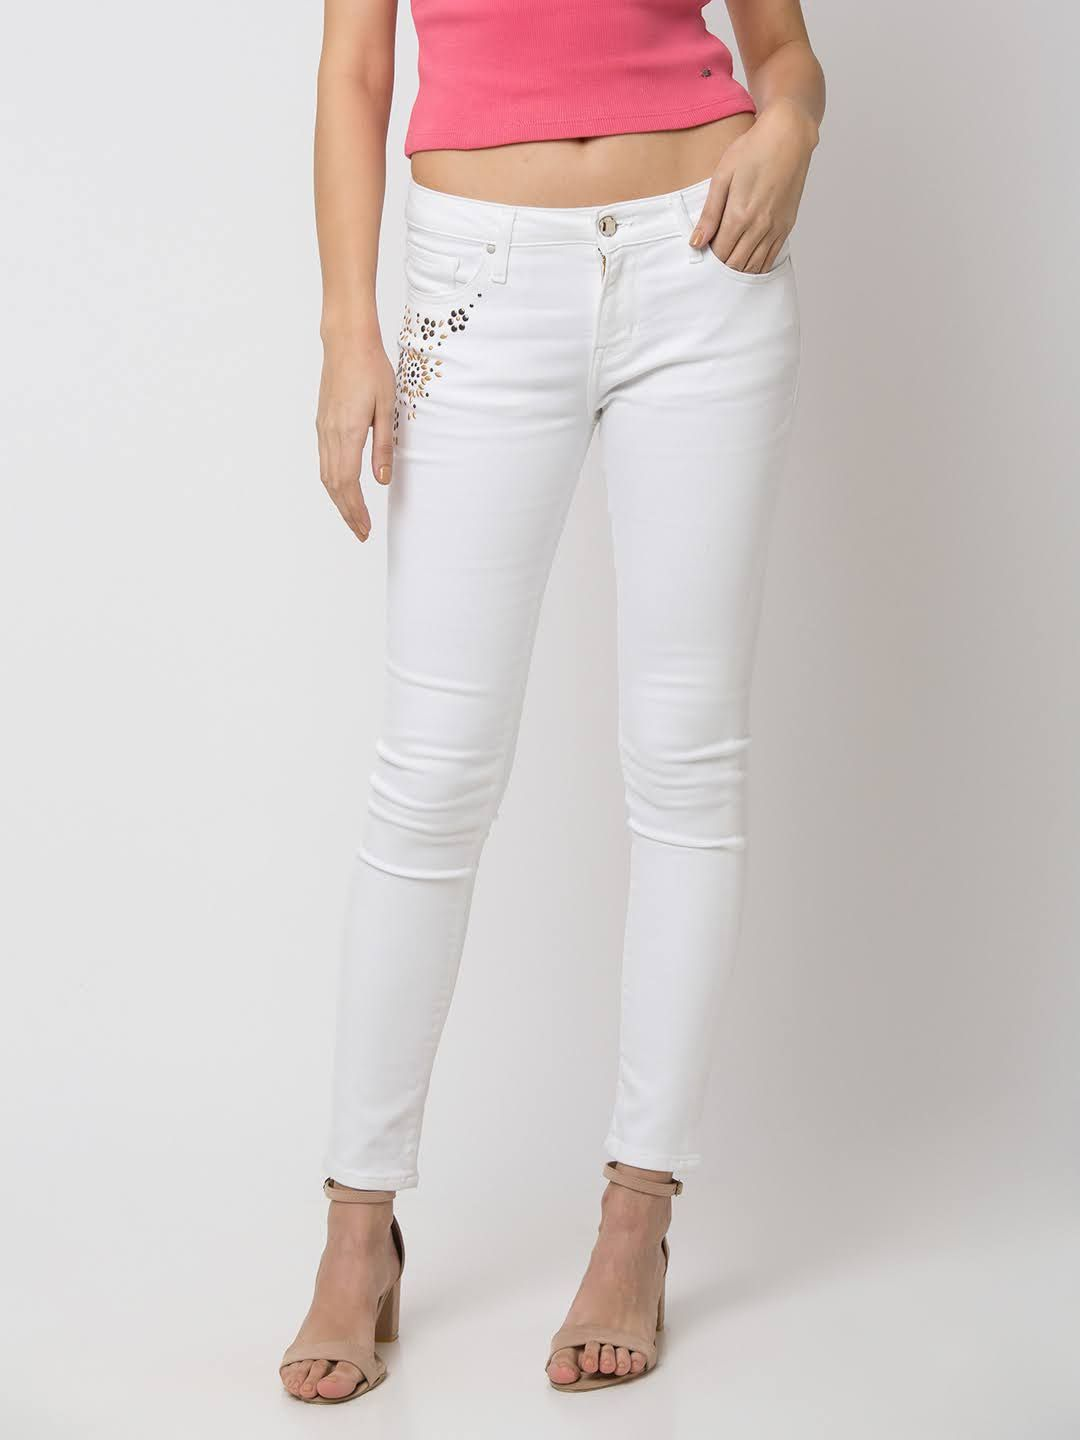 SPYKAR White Cotton SKINNY FIT JEANS